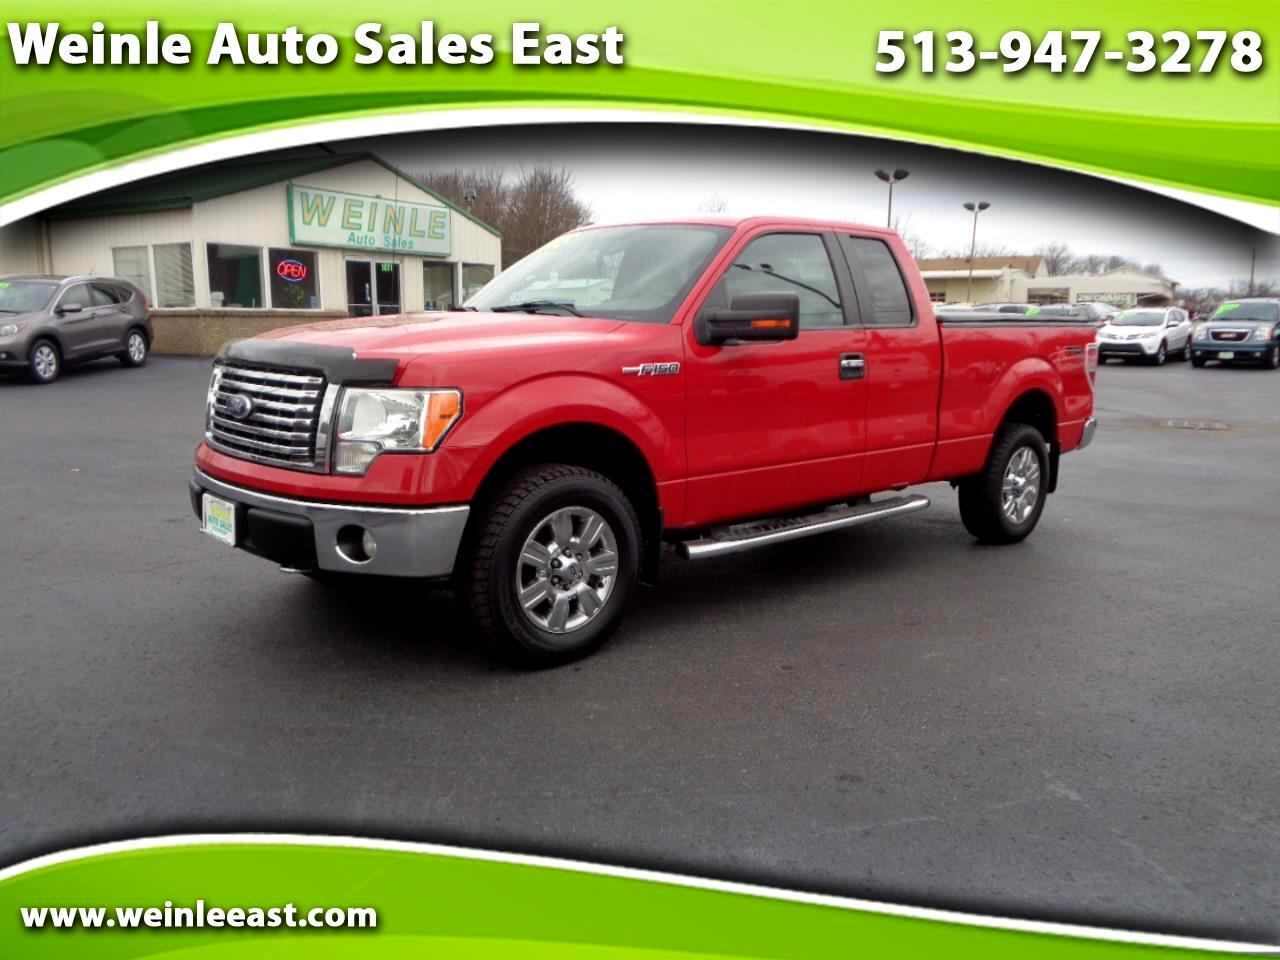 2010 Ford F-150 XLT 4X4 SUPERCAB W/XTR PACKAGE